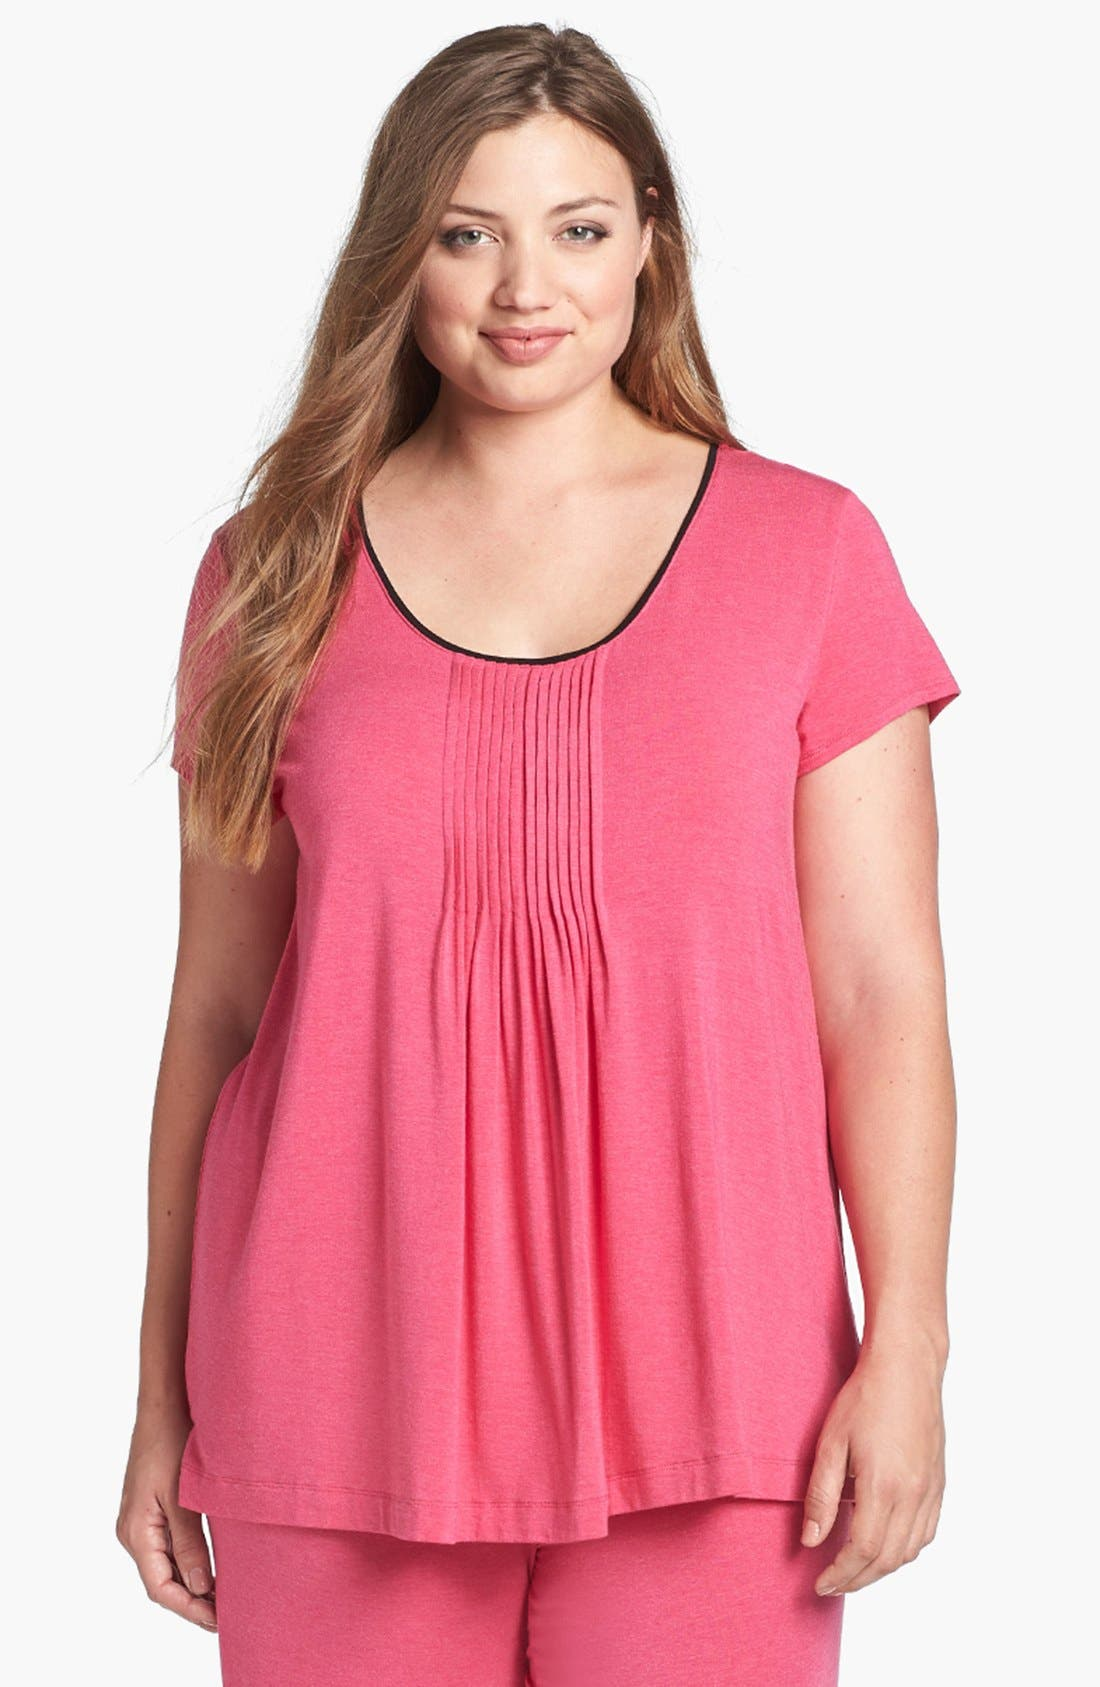 Main Image - DKNY '7 Easy Pieces' Pintuck Top (Plus Size)